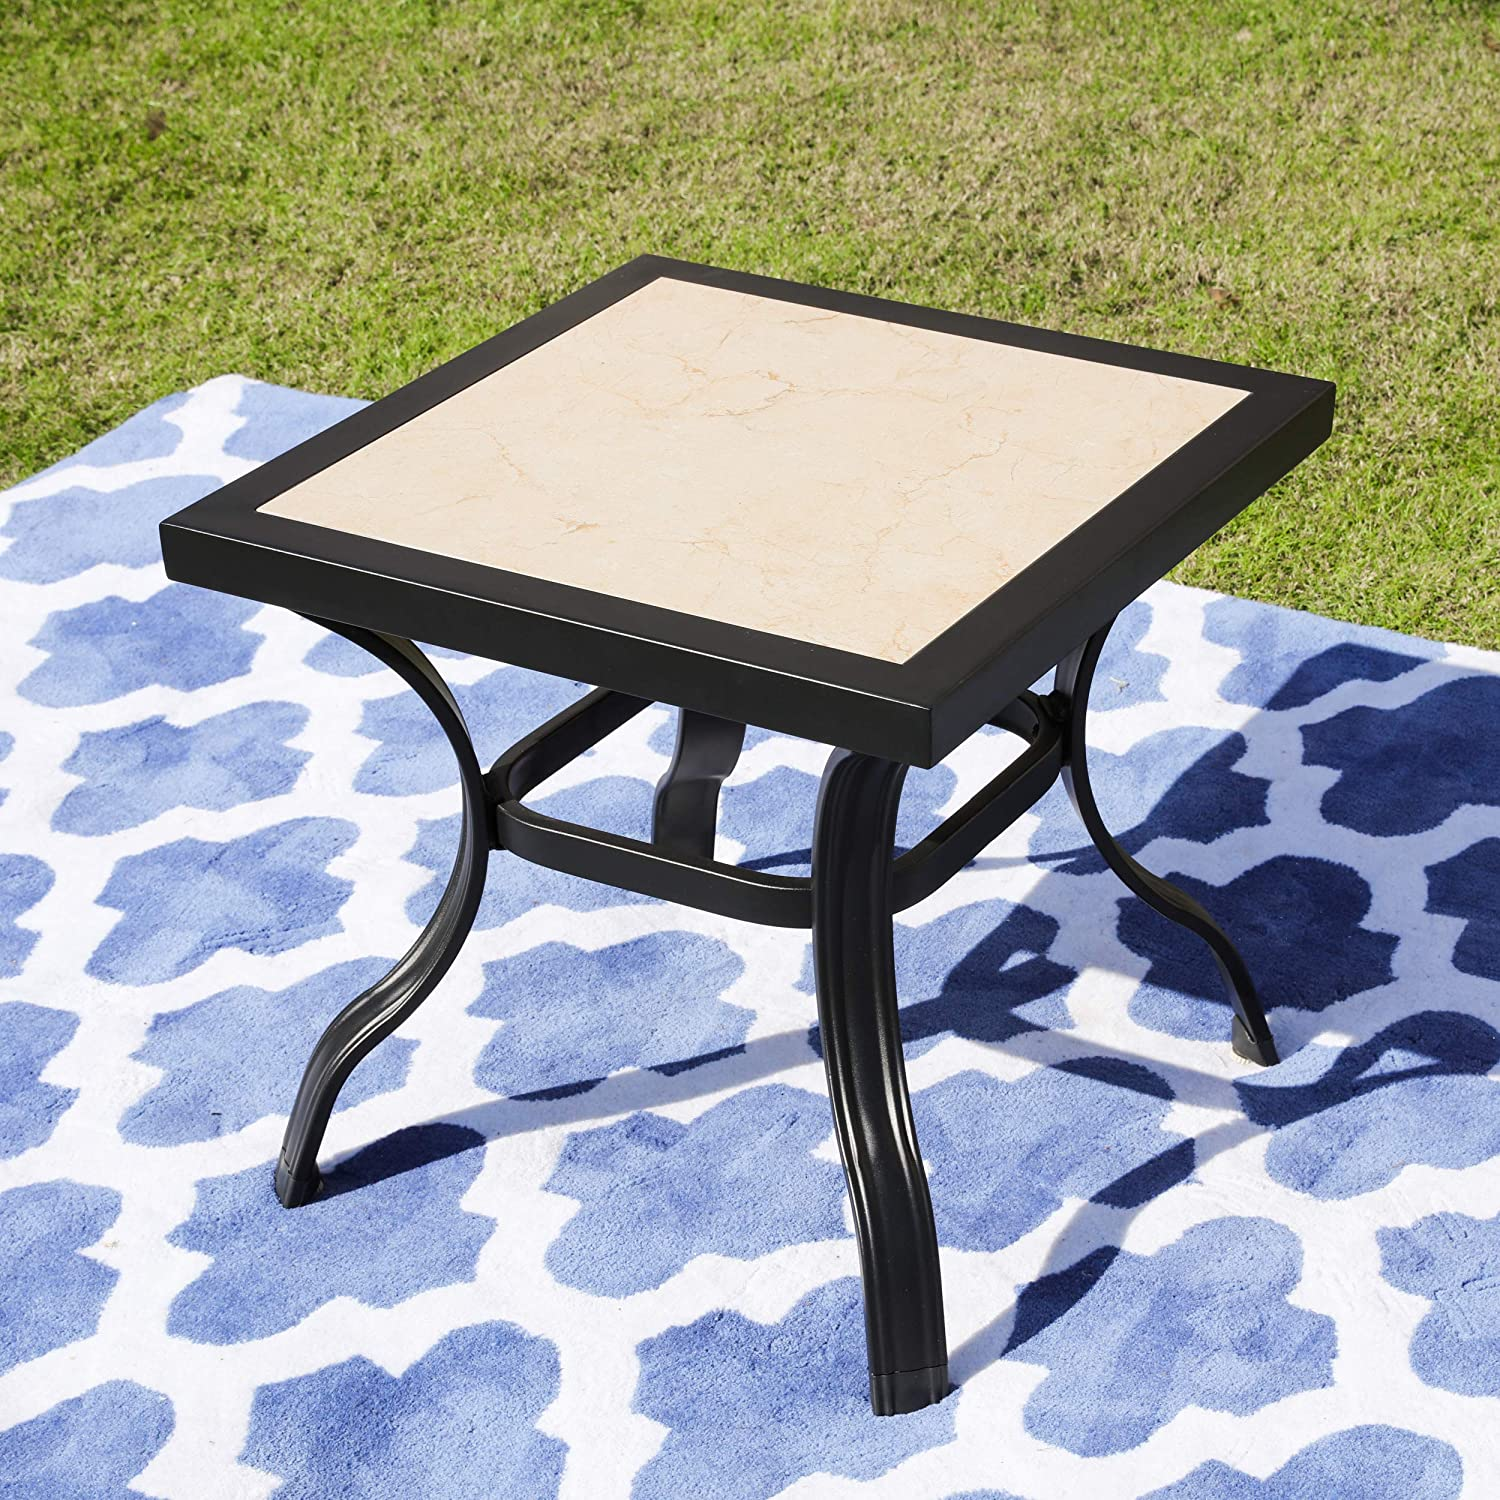 """LOKATSE HOME 21"""" Outdoor Square Patio Dining Table Metal Steel Legs with Ceramics Top, Black"""